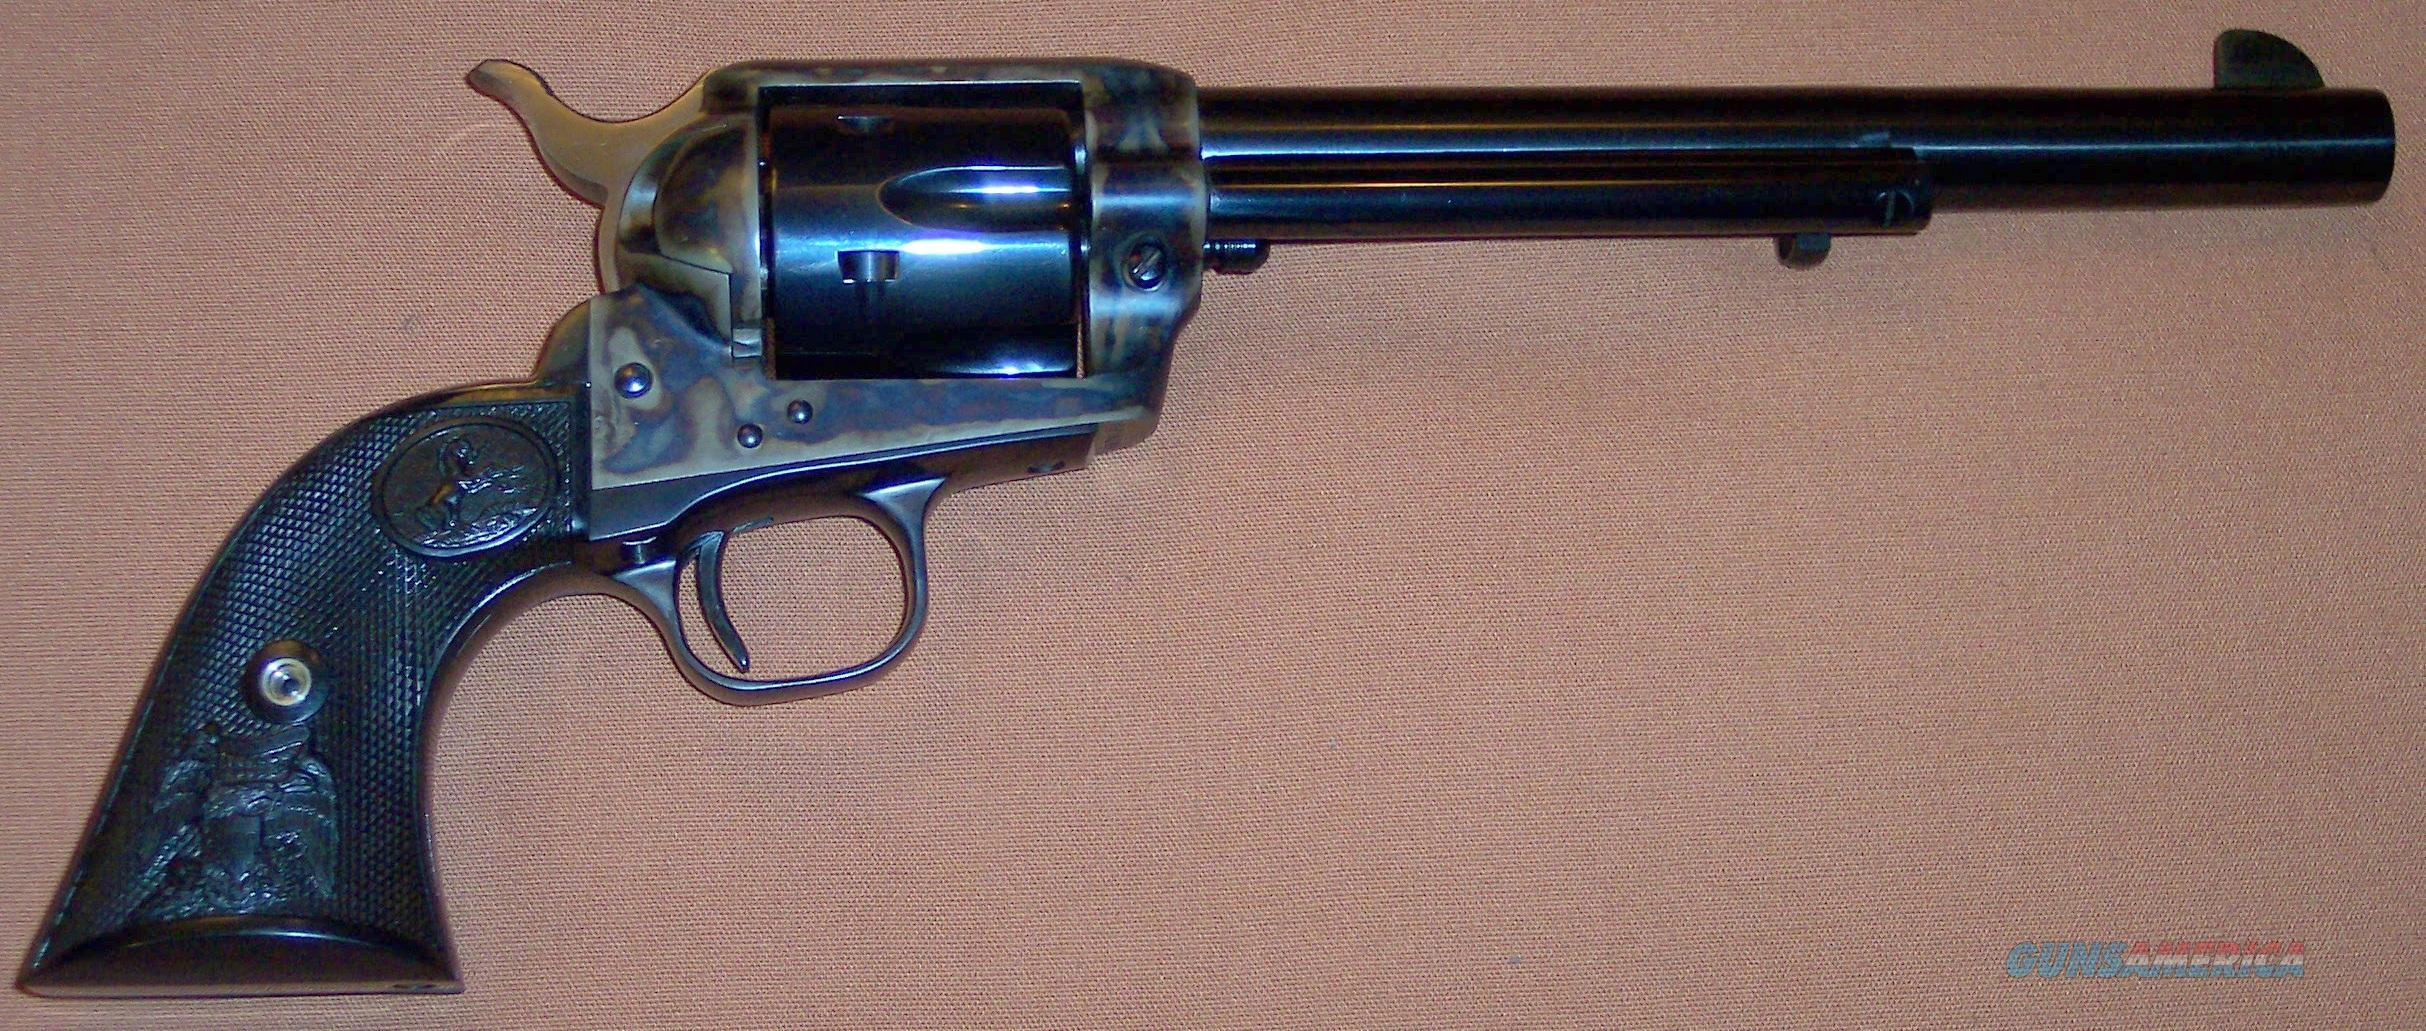 Colt .45 single action army (saa) revolver